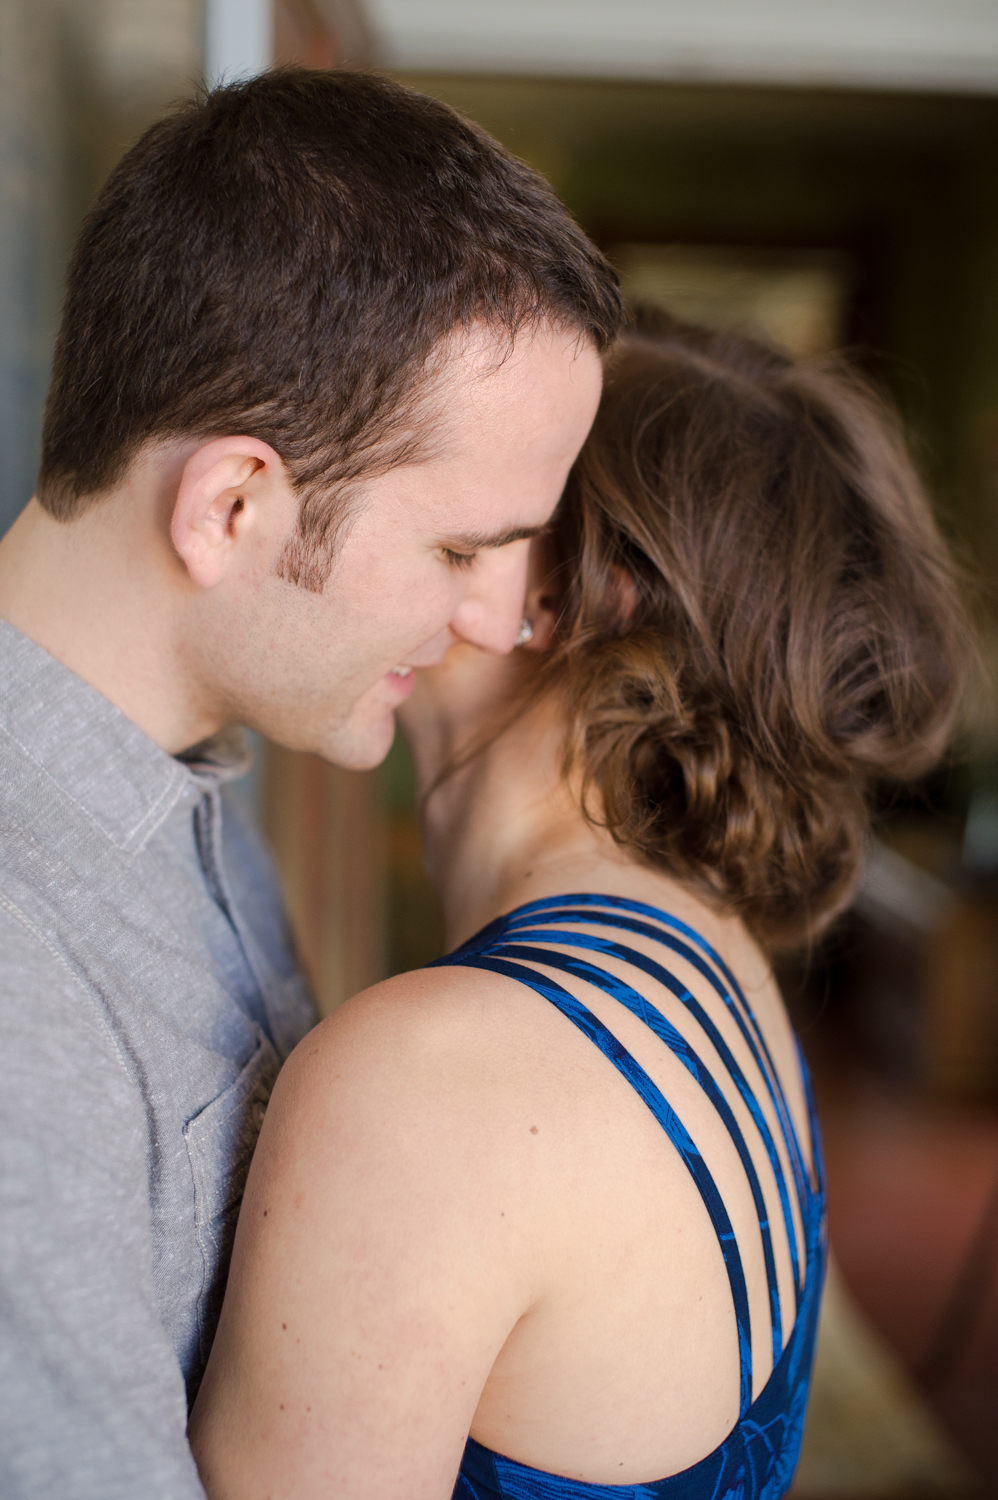 BARR_MANSION_ENGAGEMENT_SHOOT_BY_MATTHEW_MOORE_PHOTOGRAPHY_00034.jpg